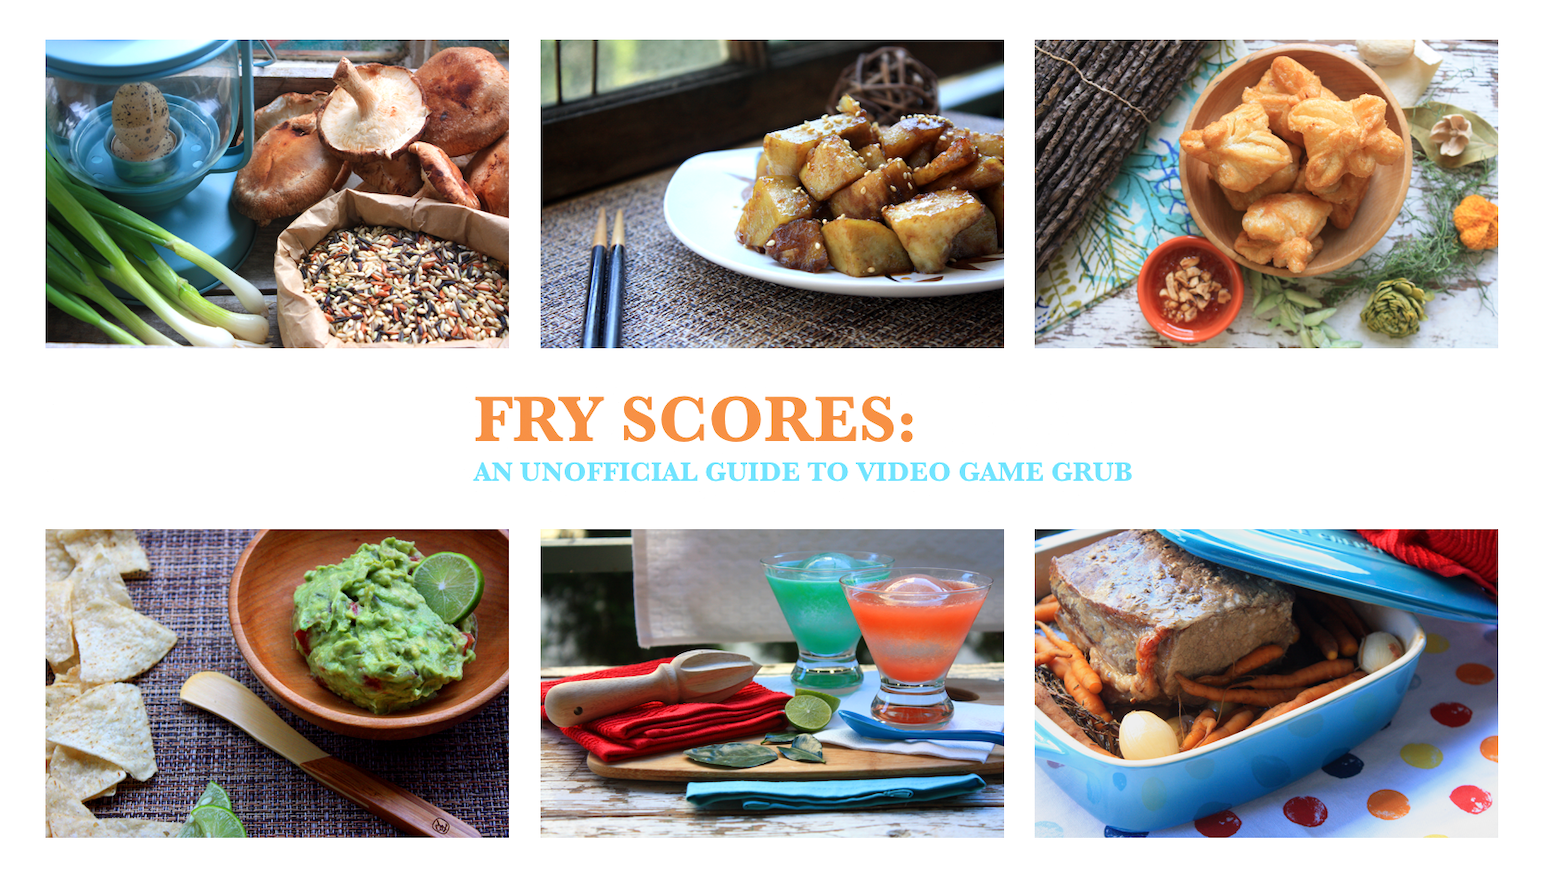 Fry Scores: An Unofficial Guide To Video Game Grub by Holly